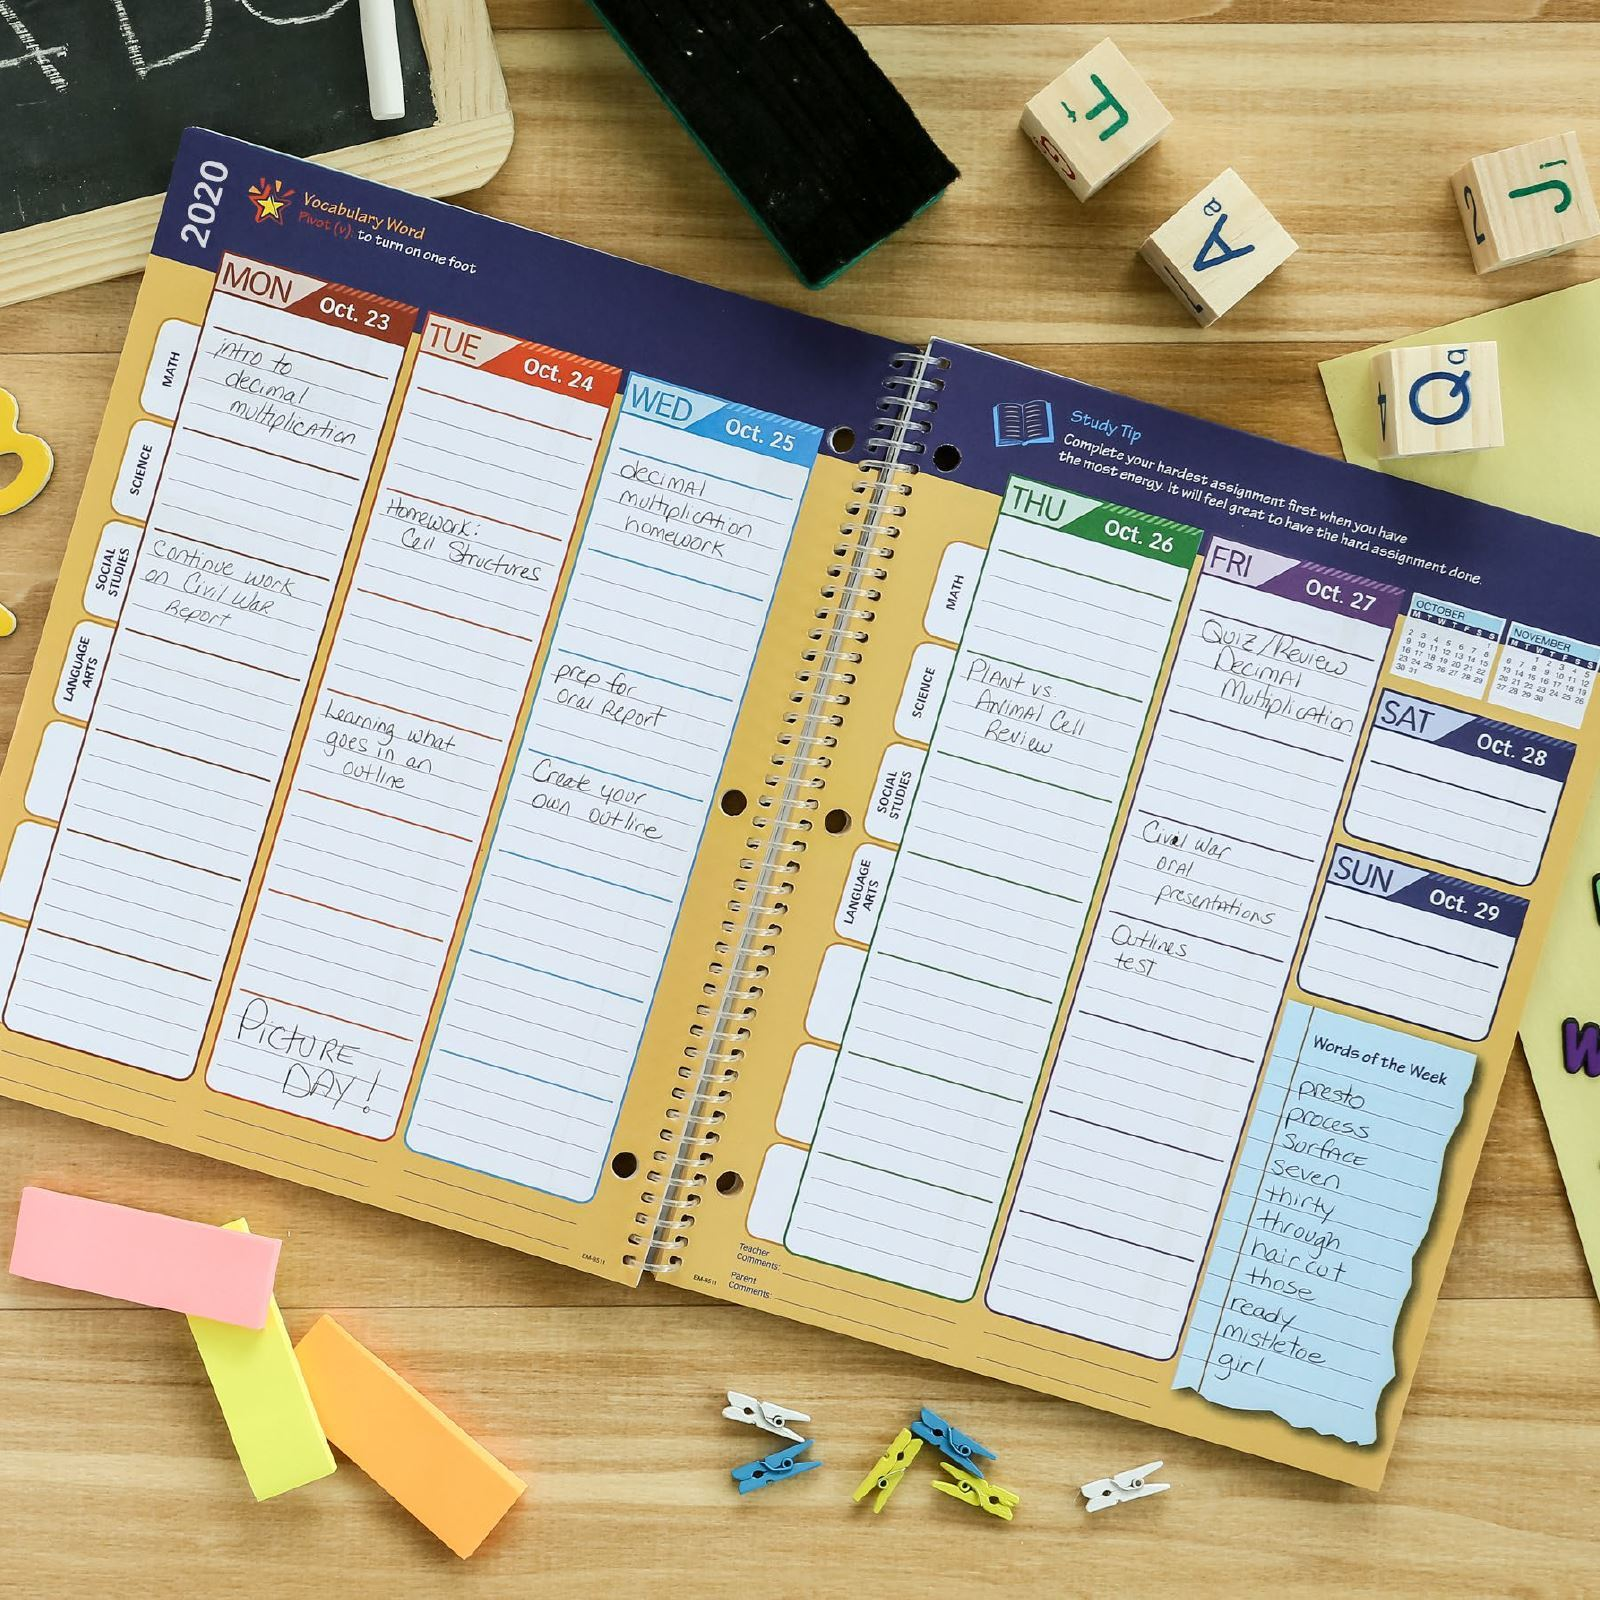 Picture of Dated Elementary Matrix Student Planner for Academic Year 2020-2021